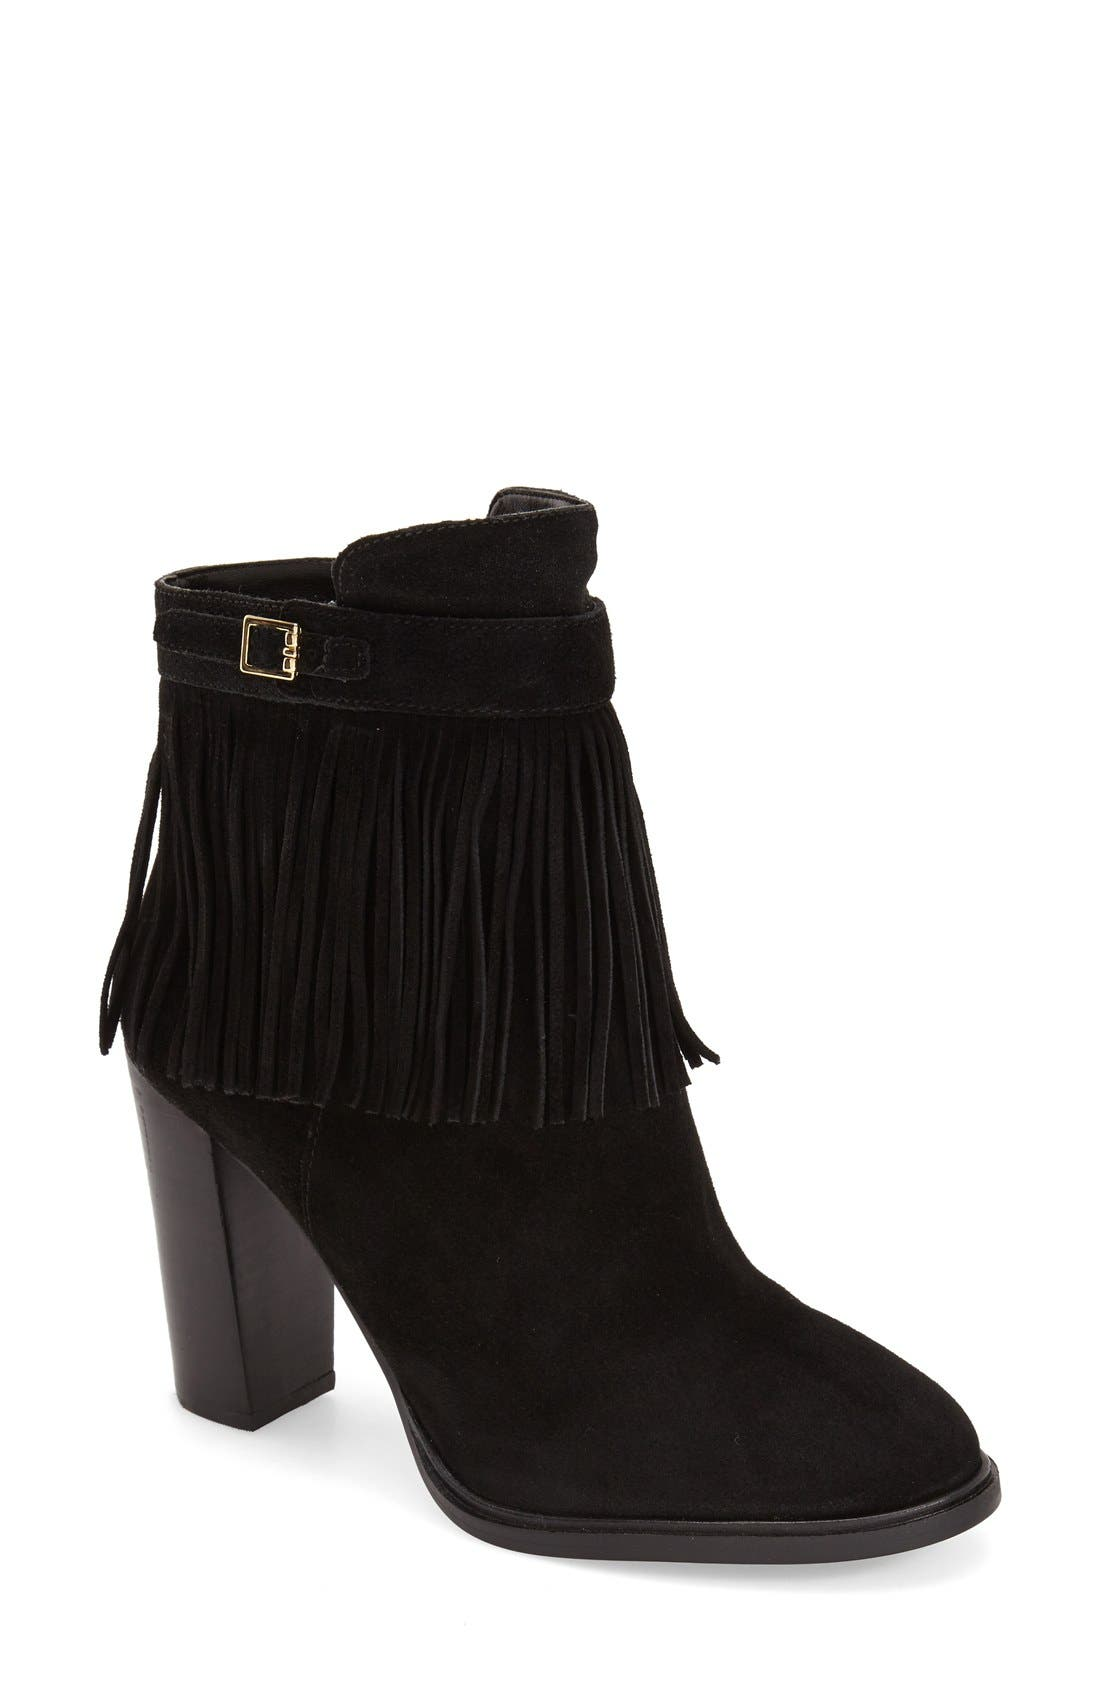 Alternate Image 1 Selected - Ivanka Trump 'Preta' Fringe Boot (Women)